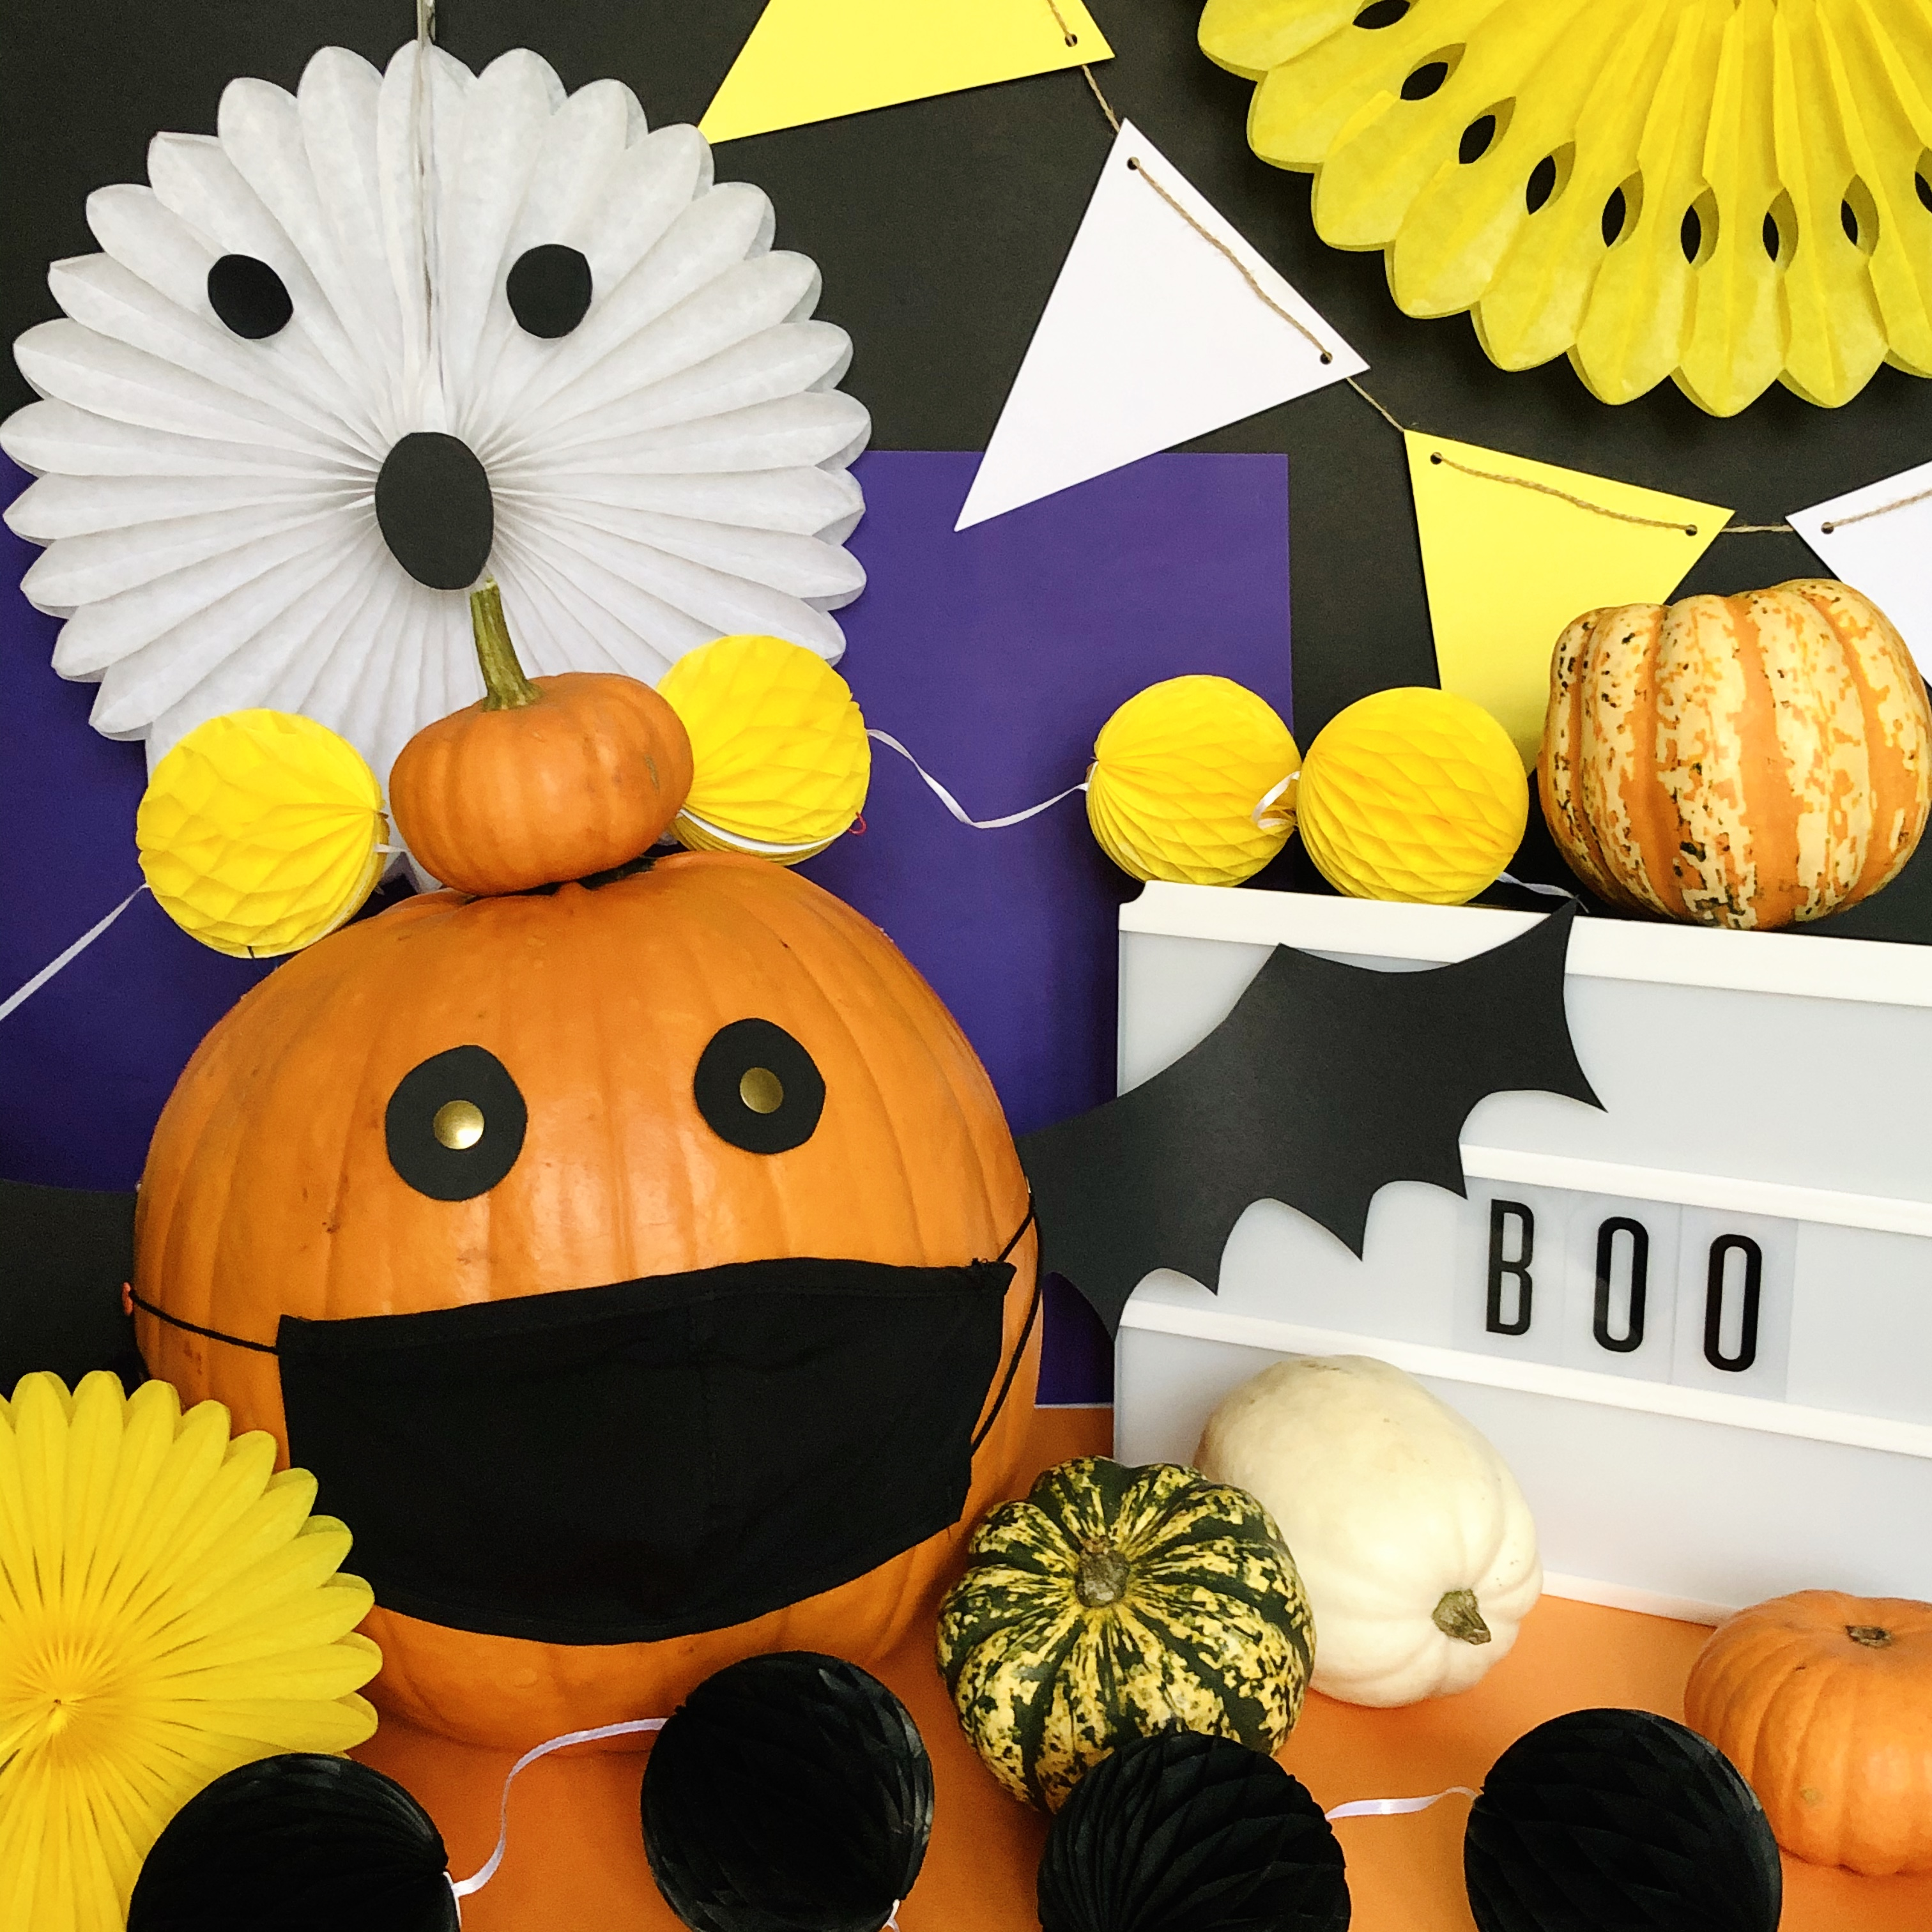 DIY Halloween display from the Conscious Party Box